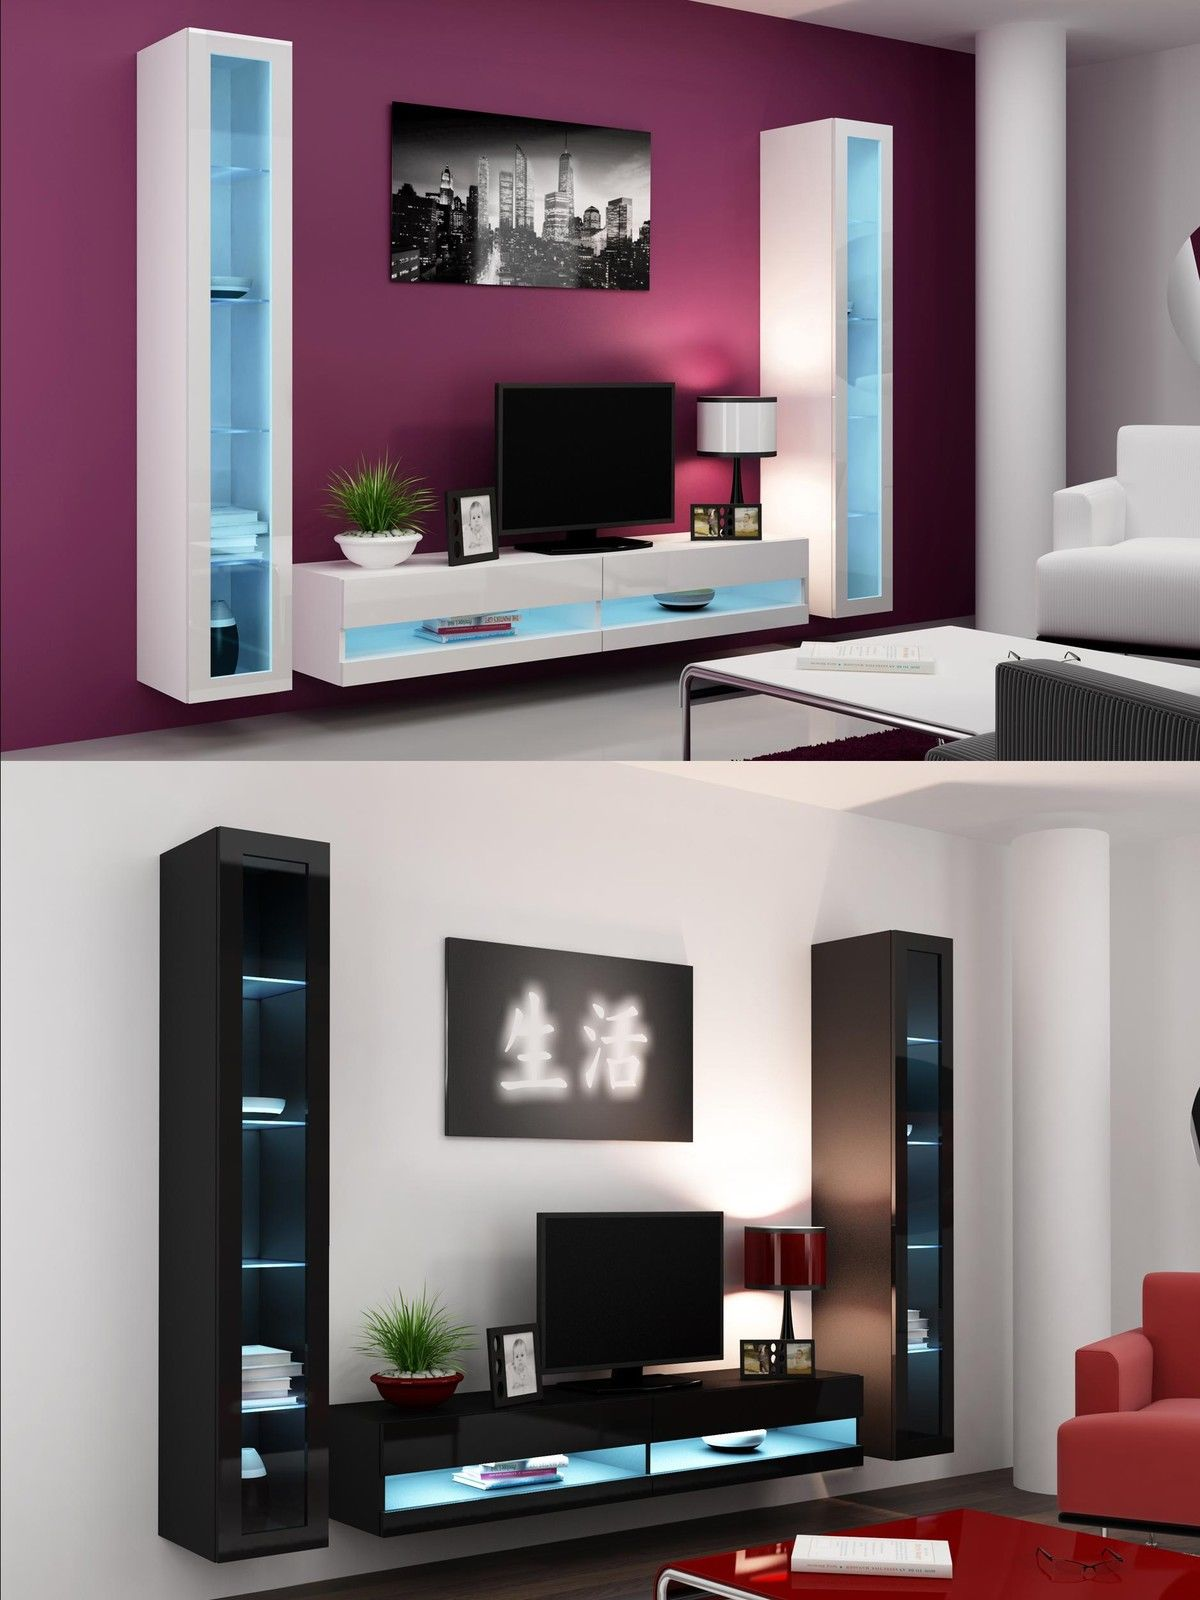 High gloss living room furniture tv stand wall mounted - High gloss living room furniture uk ...